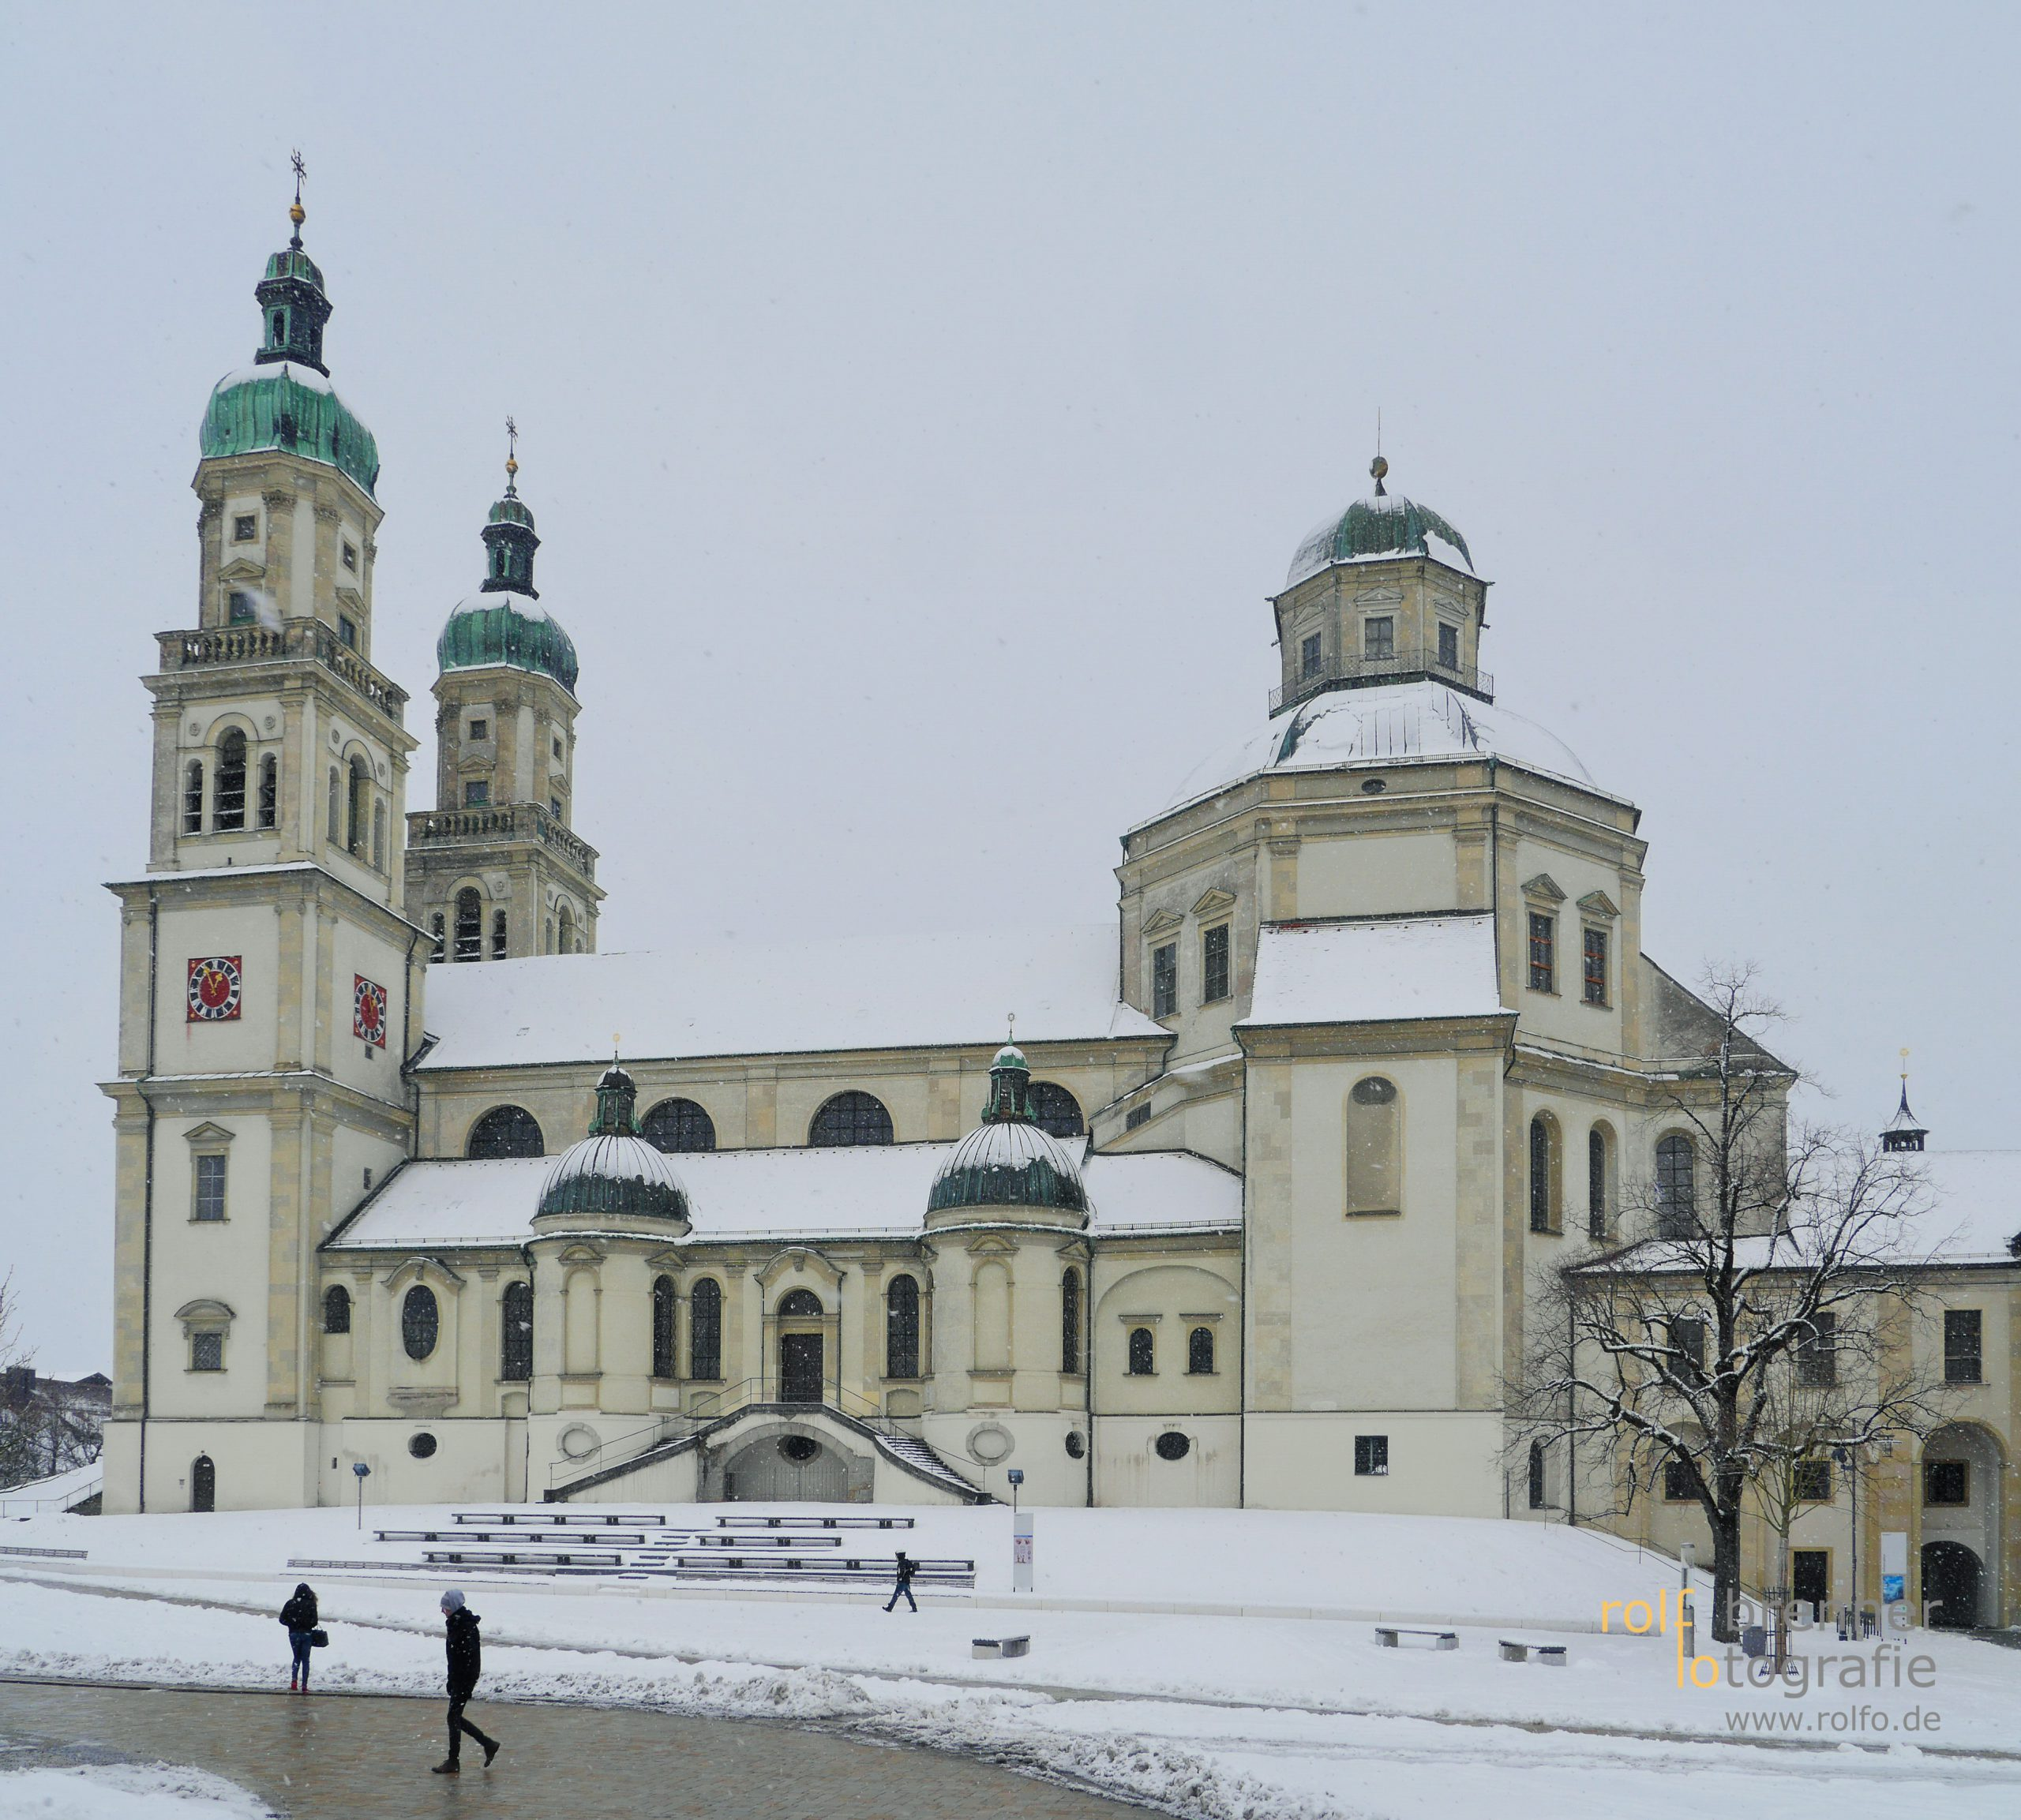 Kempten im Winter